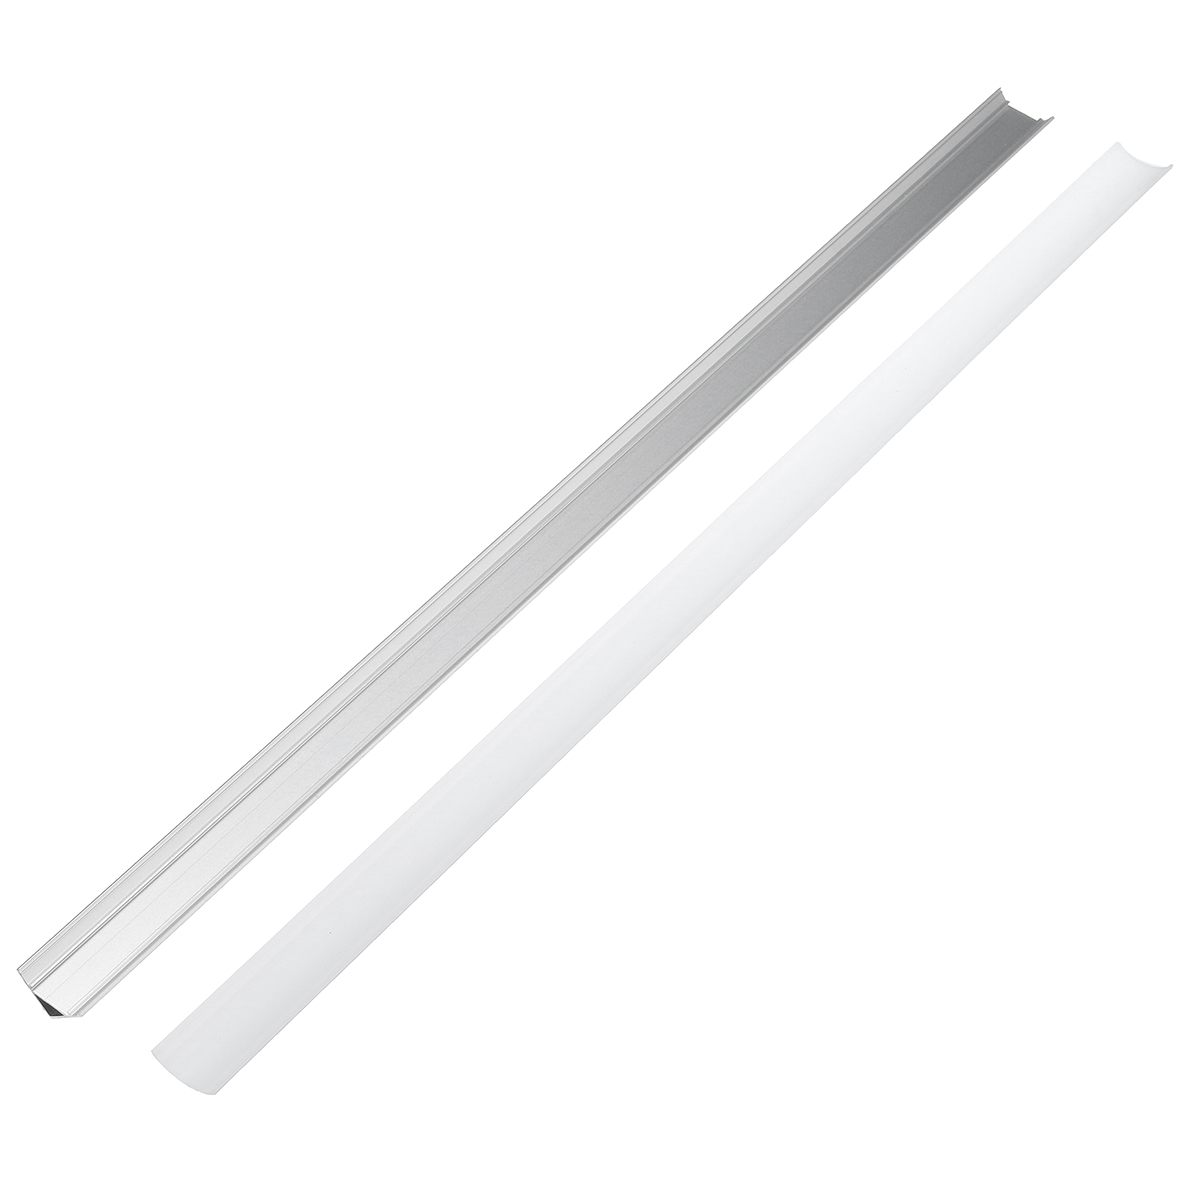 LUSTREON 45CM U/V/YW Style Aluminum Channel Holder For LED Rigid Strip Light Bar Cabinet Lamp